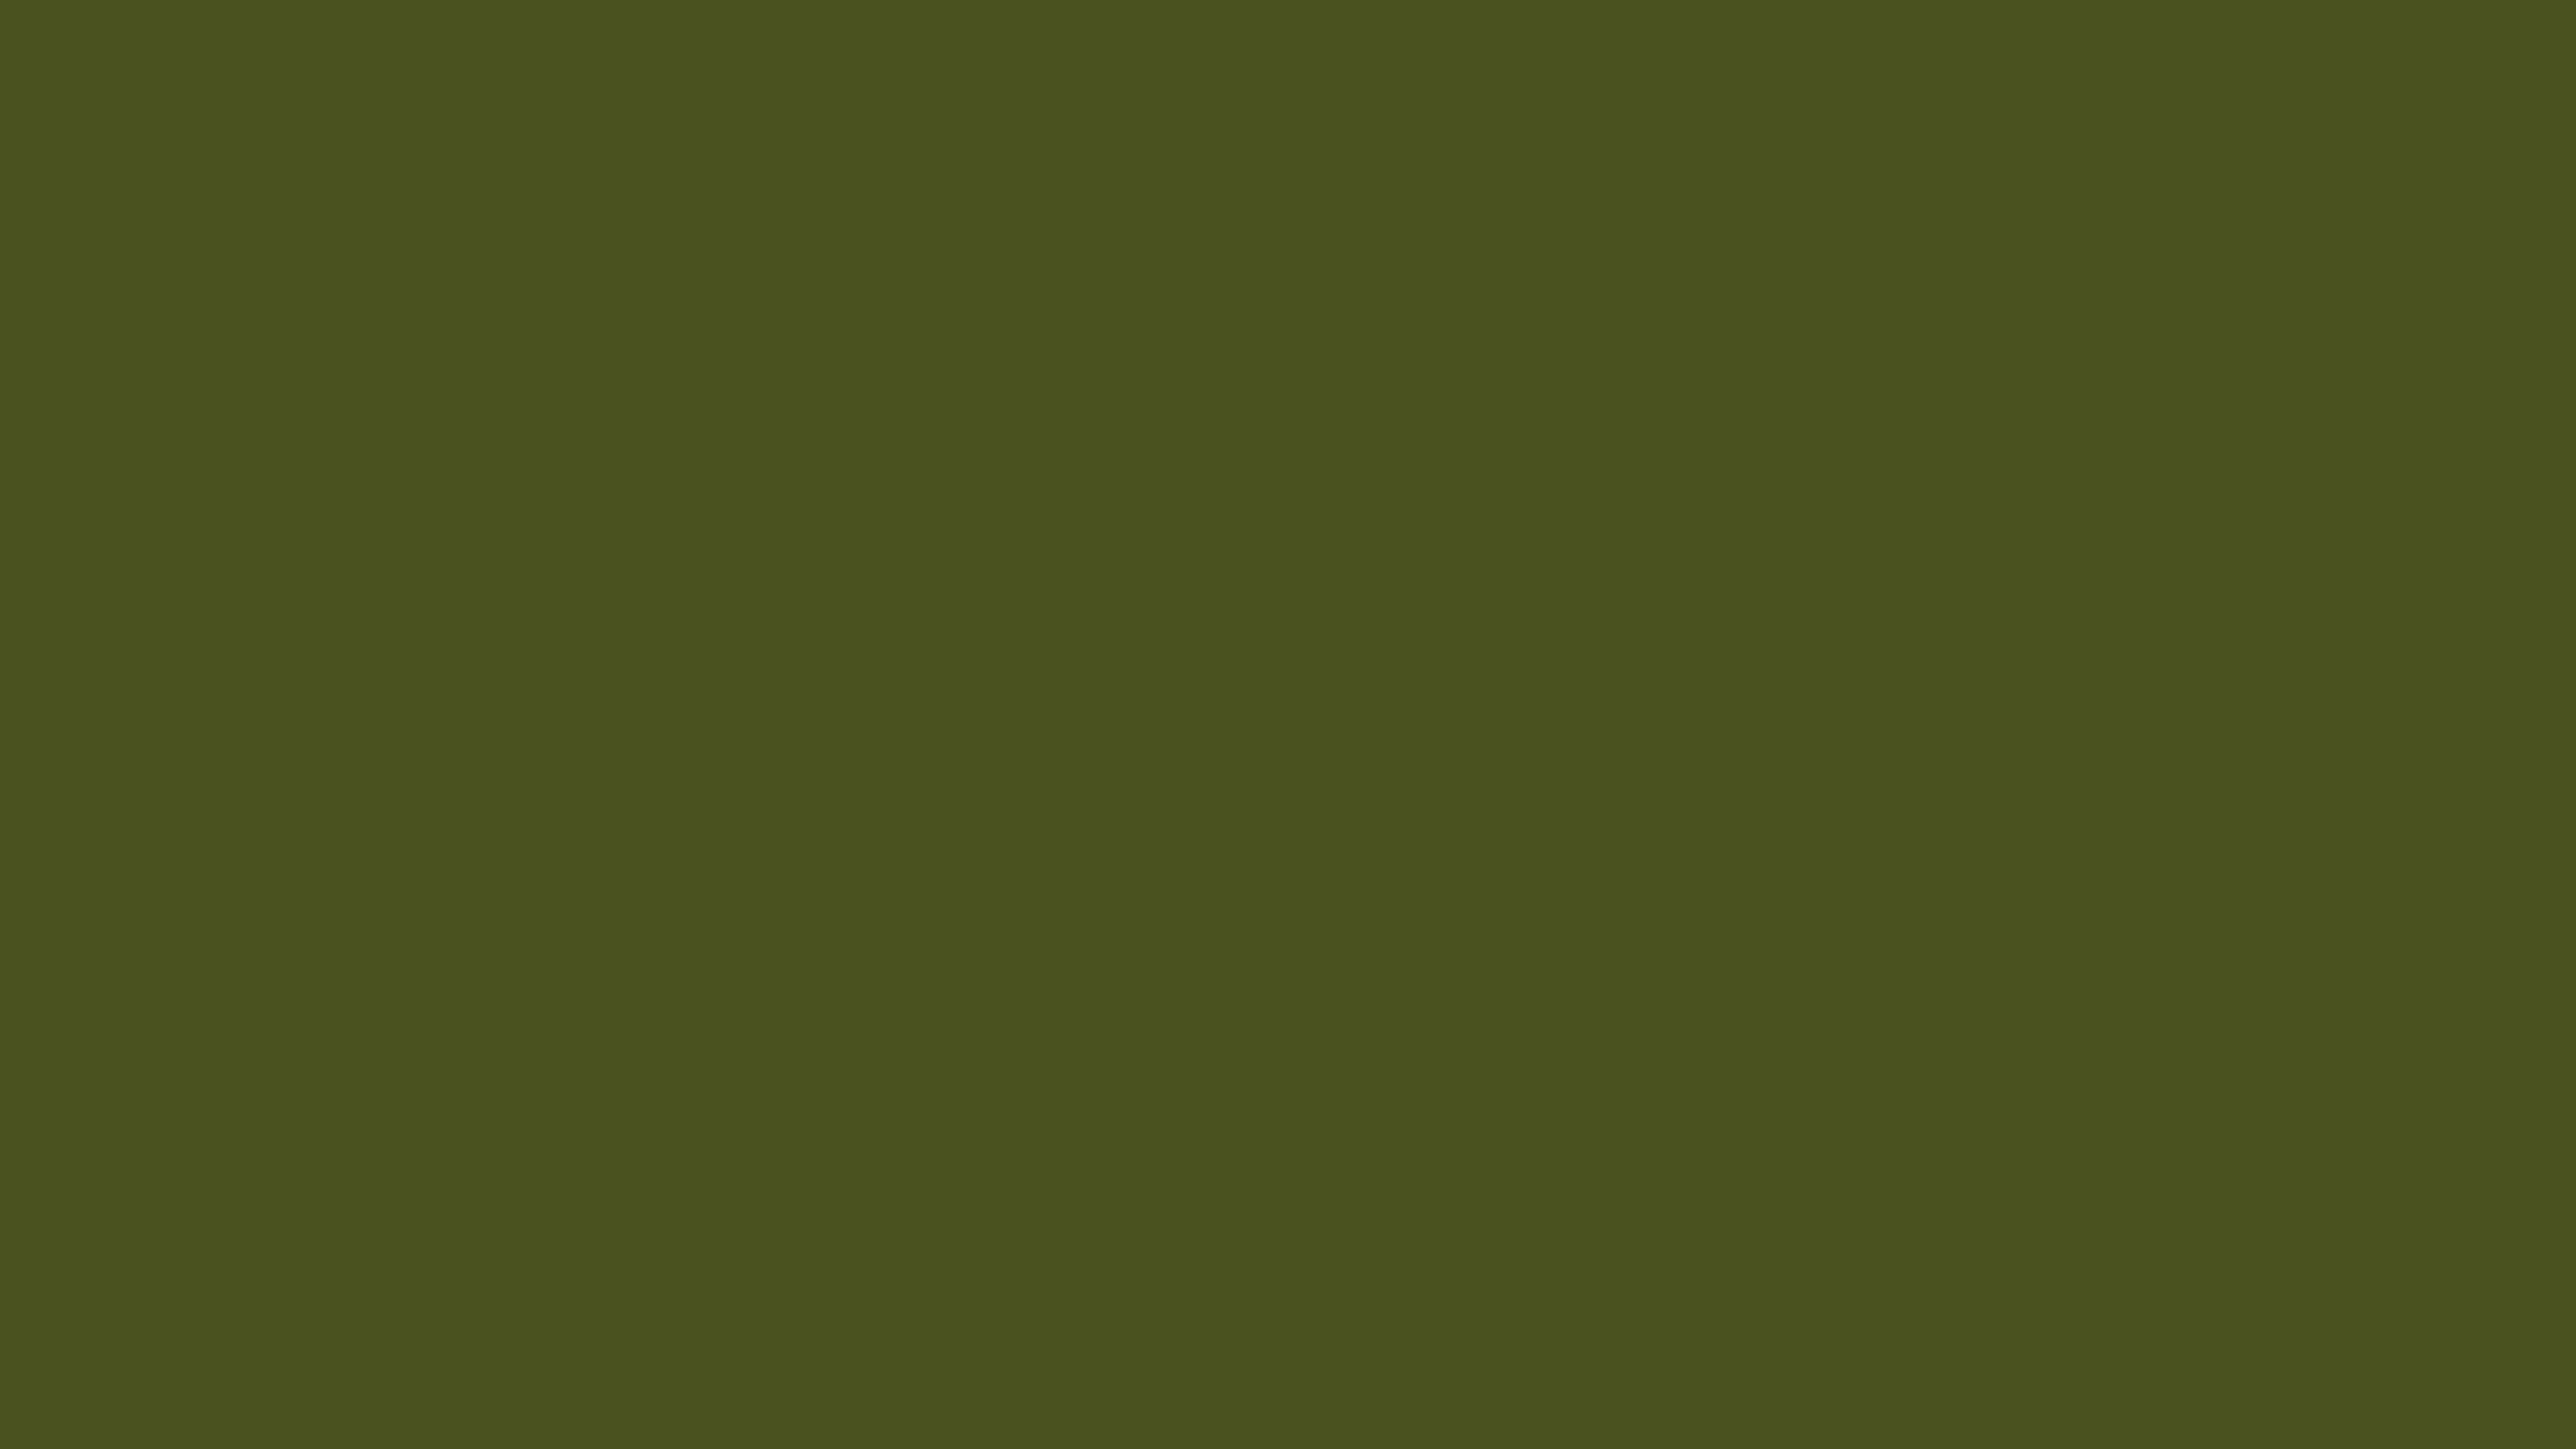 5120x2880 Army Green Solid Color Background